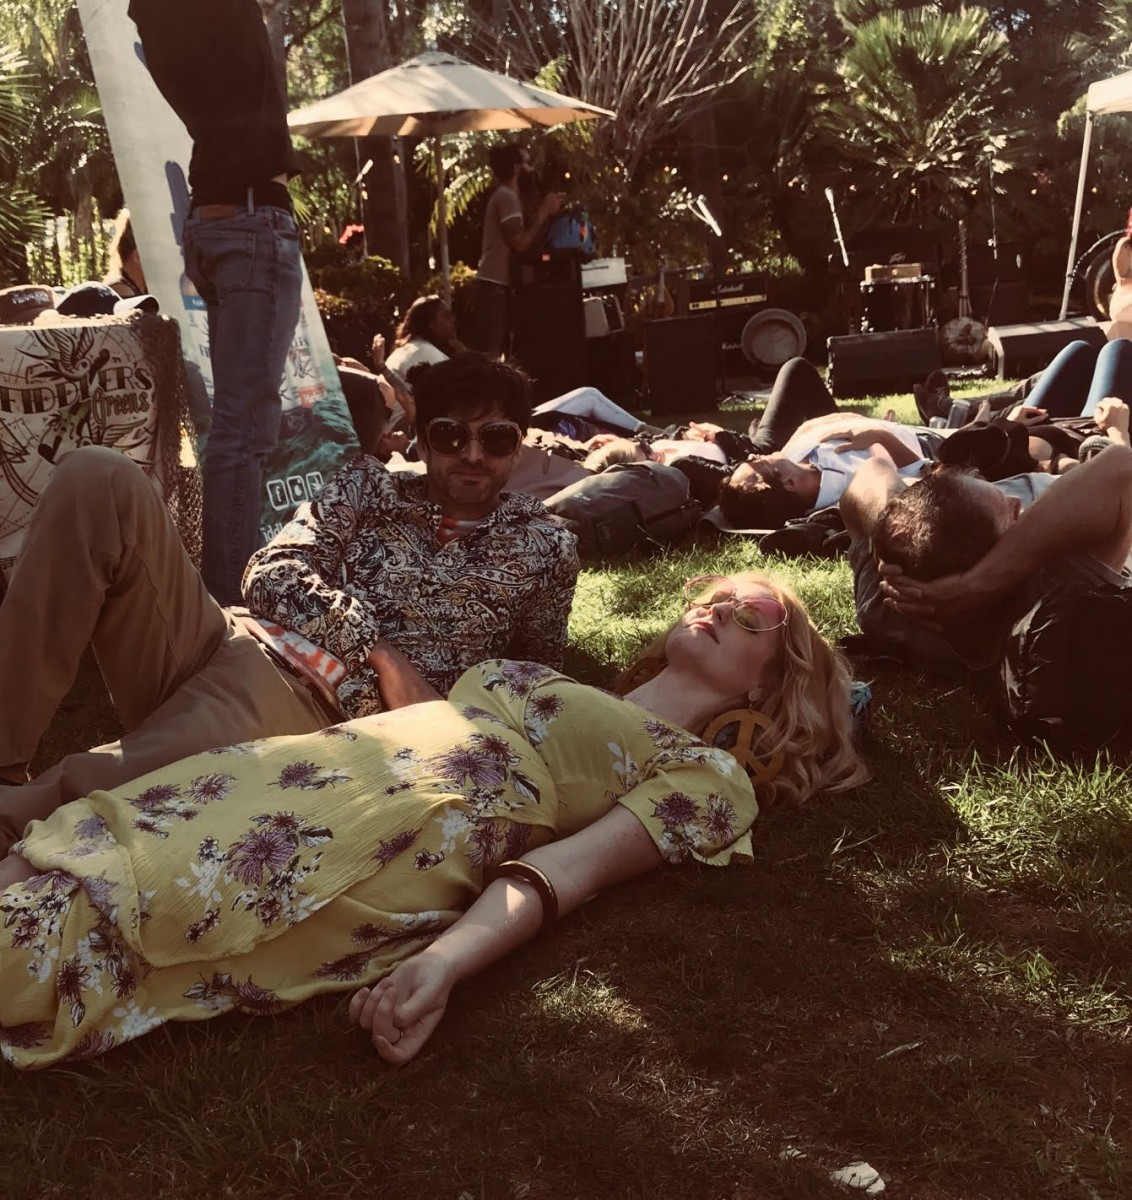 Event Review: Cannabliss Retreats 420 Party in Malibu, CA – Redefining Cannabis, Eradicating the Stigma